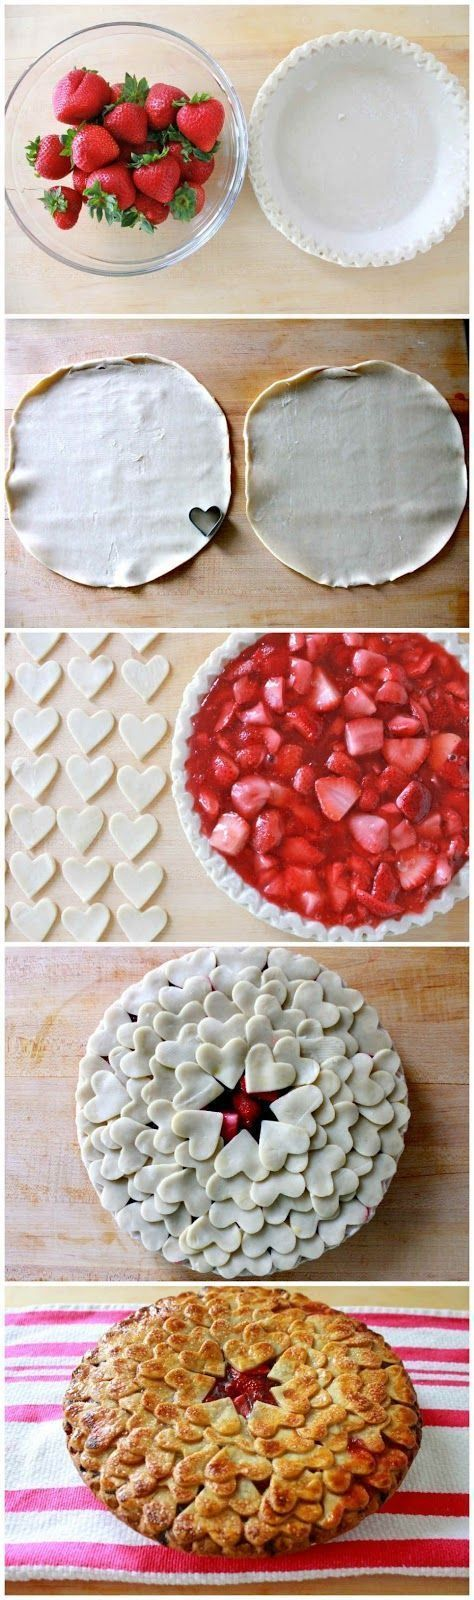 Strawberry Heart Pie. Amazing! | Fashion's Most Wanted